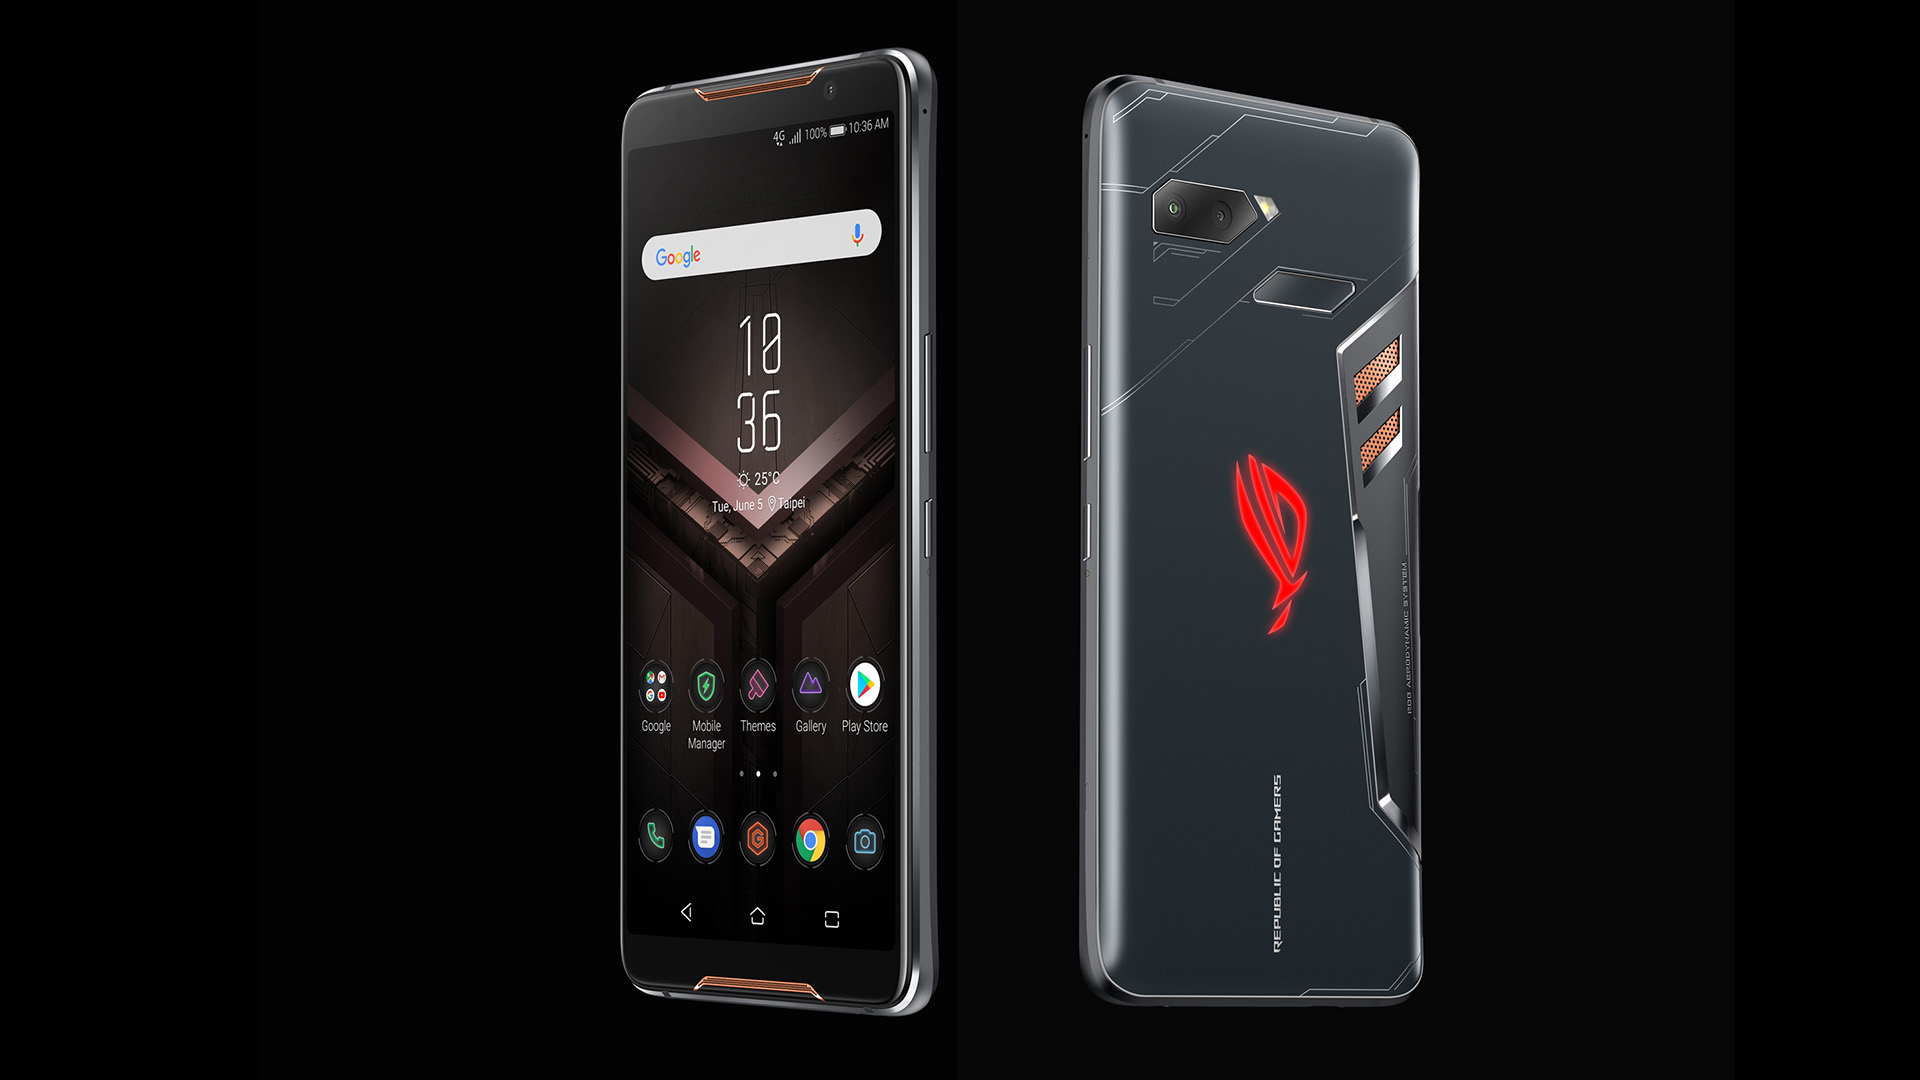 ASUS ROG Phone Unveiled: The First Gaming Smartphone From